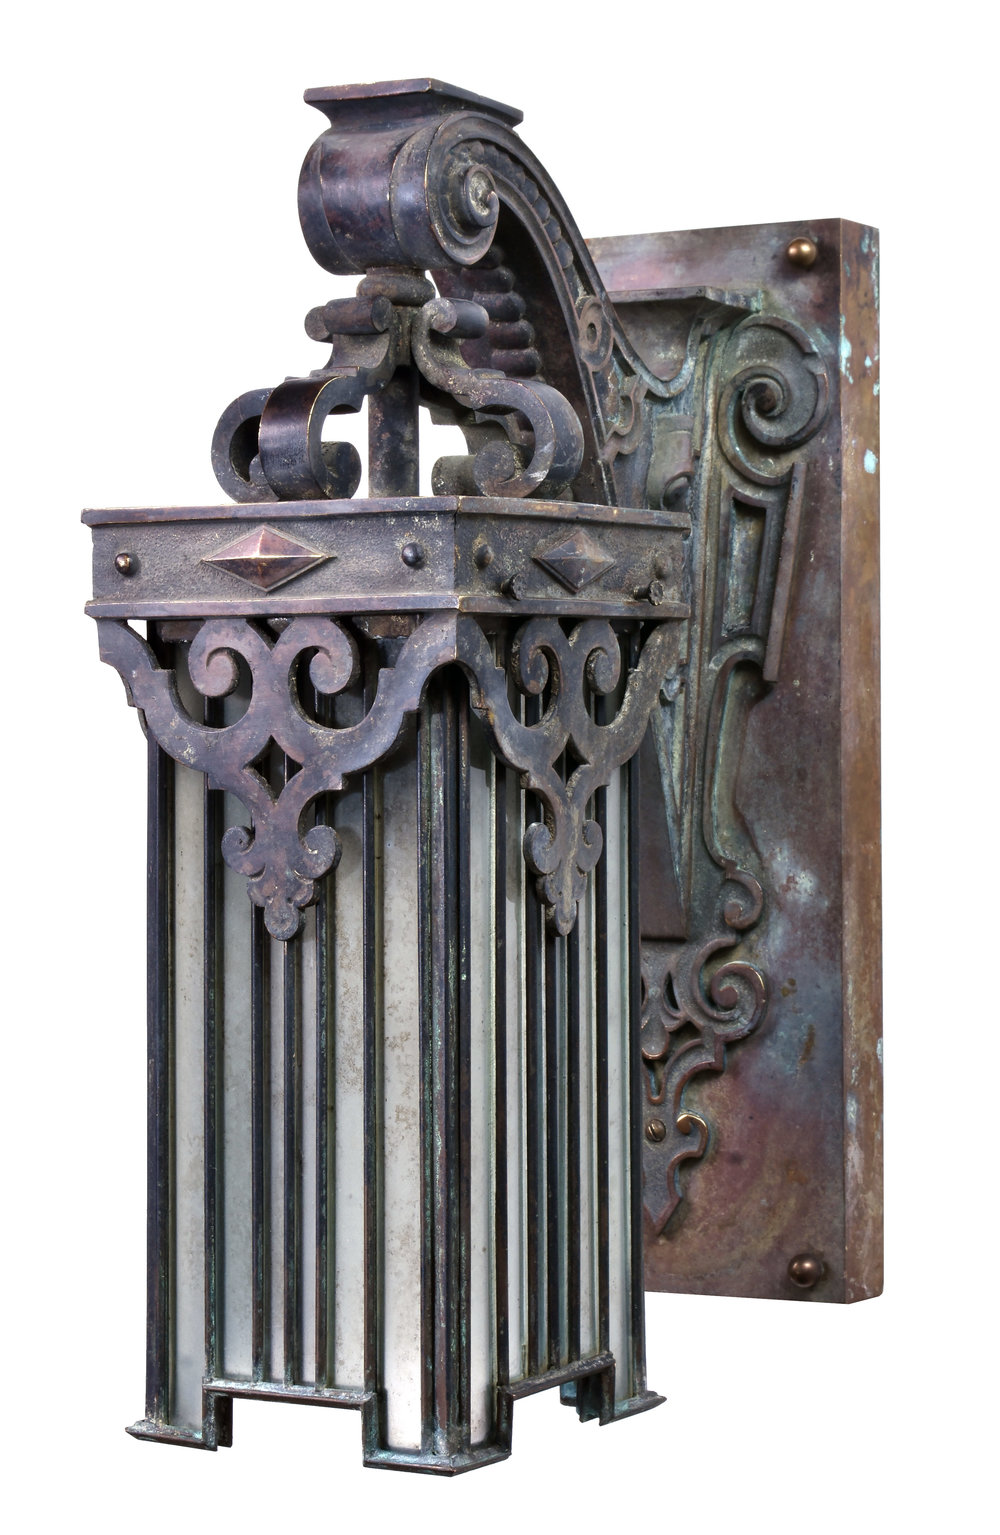 47236-cast-bronze-sconce-with-lead-shade-angle-full-view.jpg